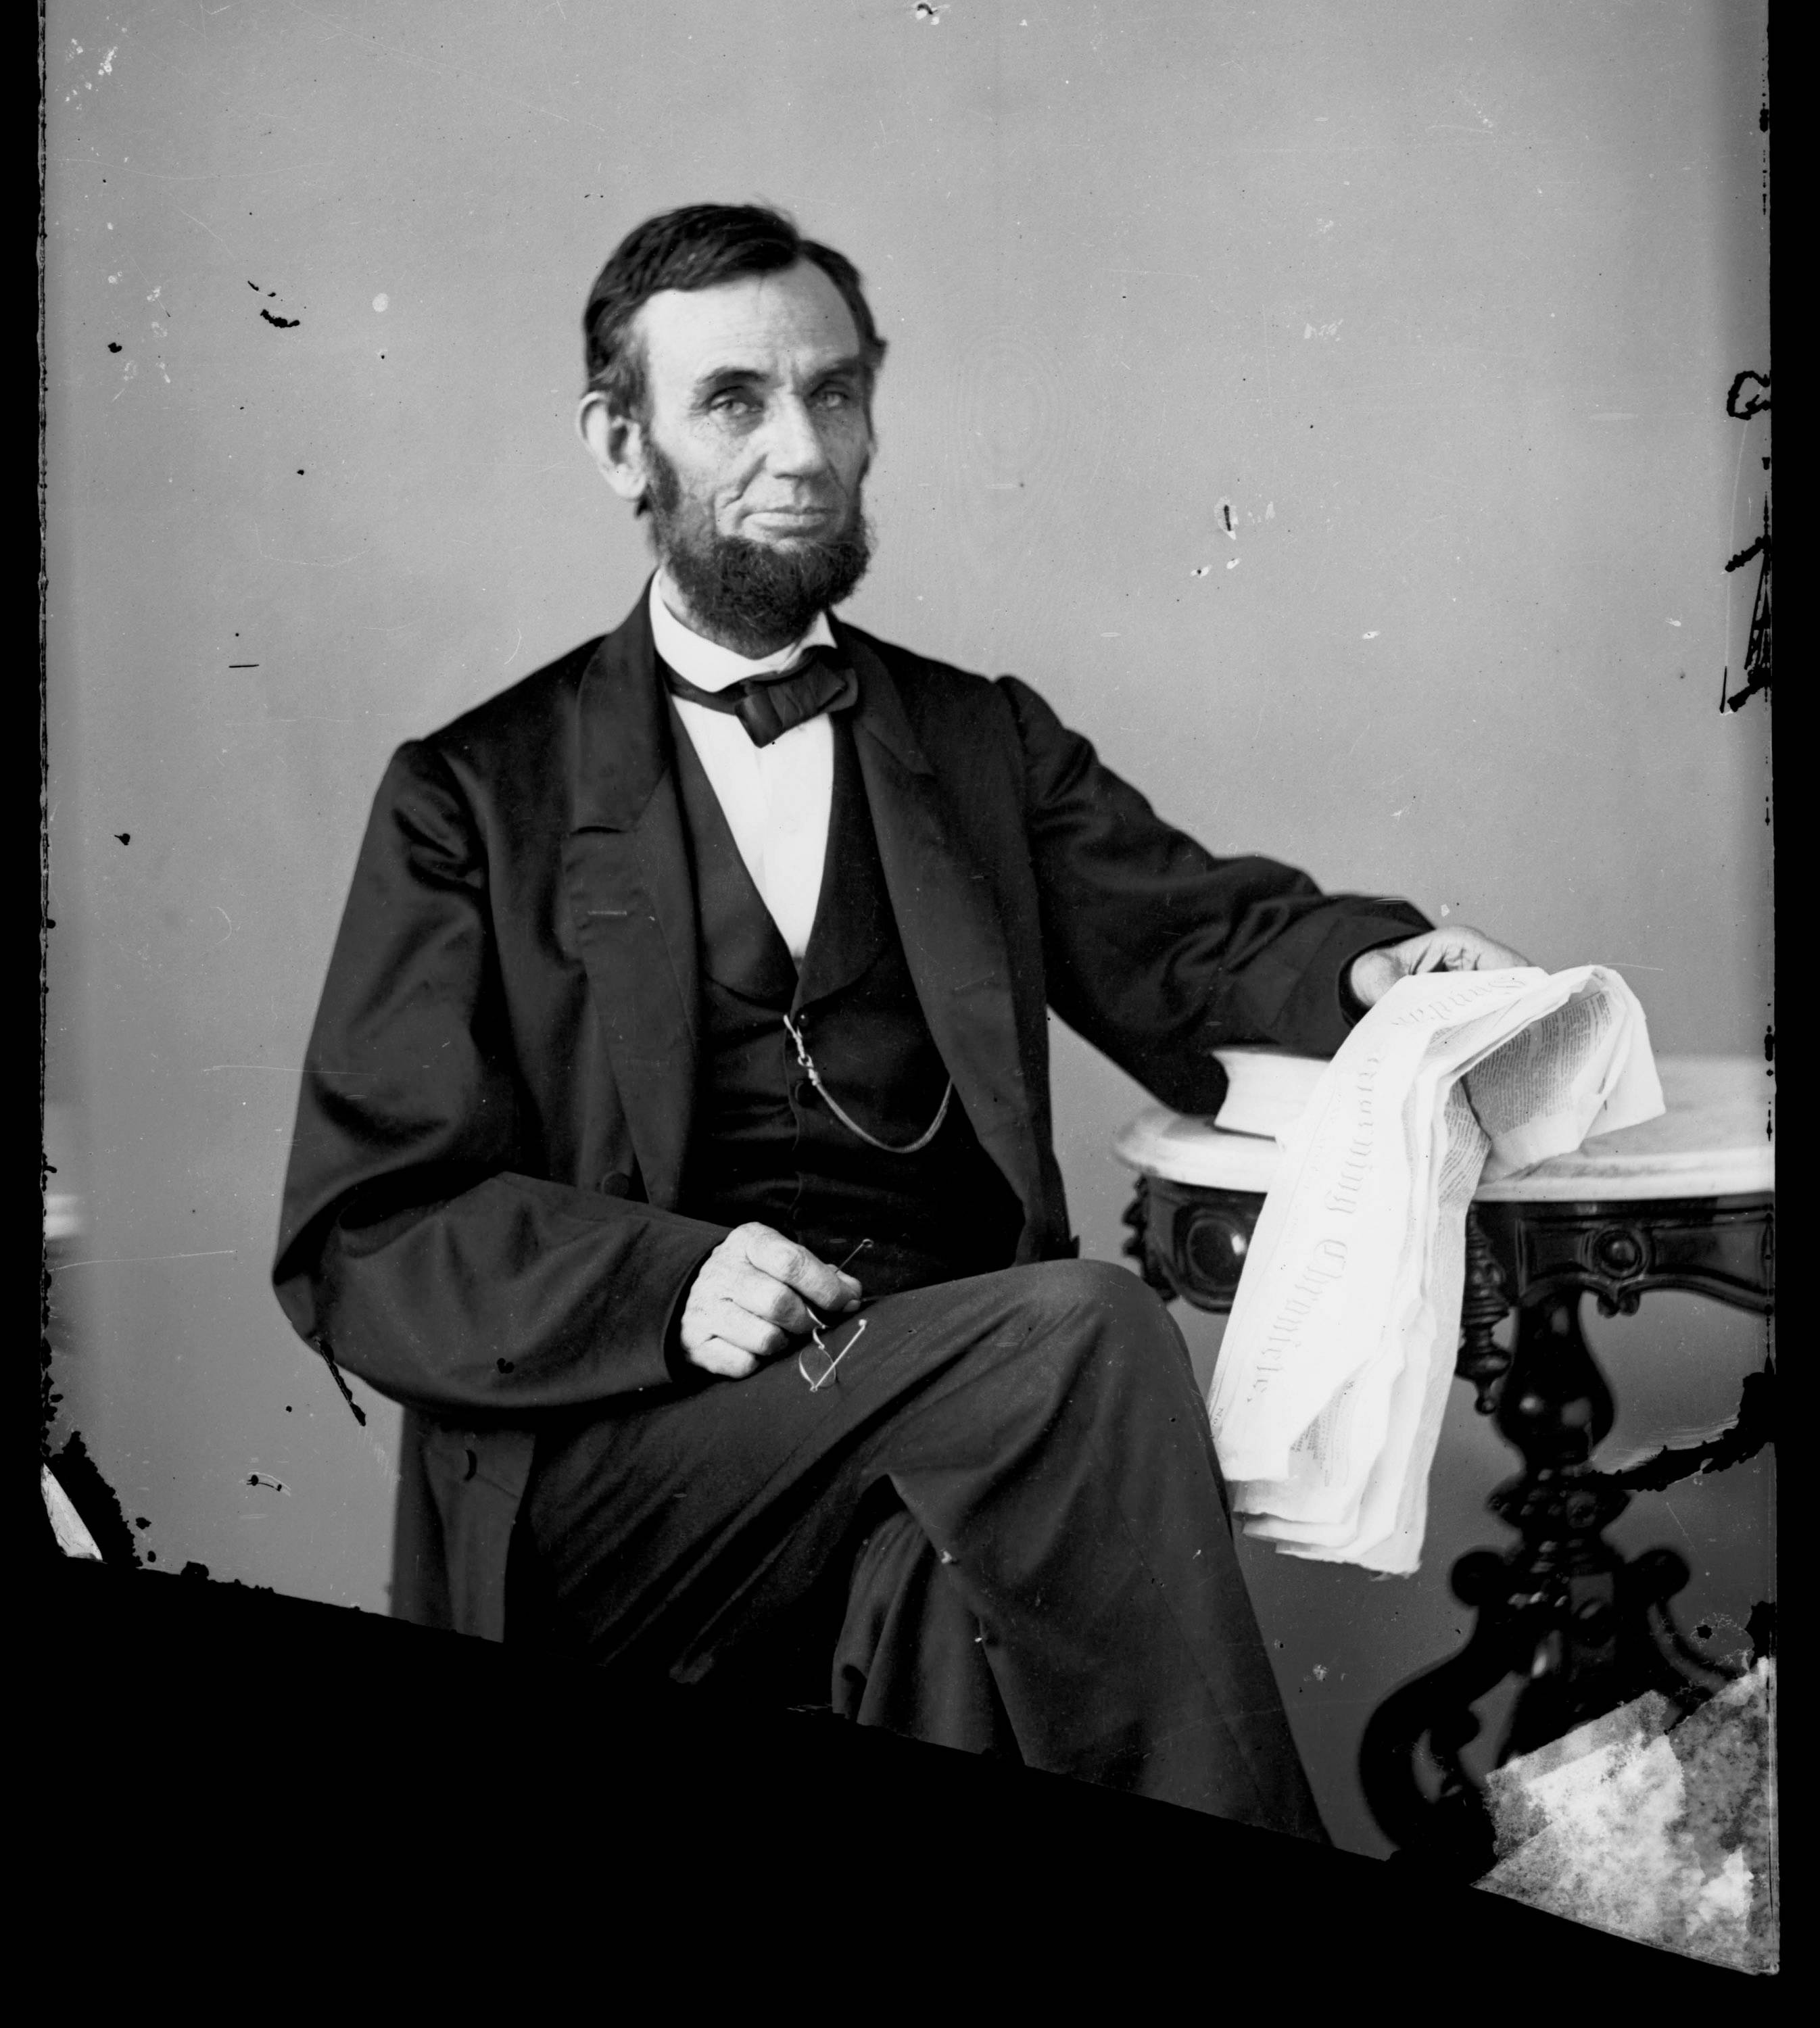 This image provided by Chicago's Abraham Lincoln Book Shop Inc. shows an image made from an Aug. 1863 glass plate negative of President Abraham Lincoln at a portrait studio in Washington, D.C. Lincoln is one of the presidents recognized in February under the umbrella of Presidents Day.